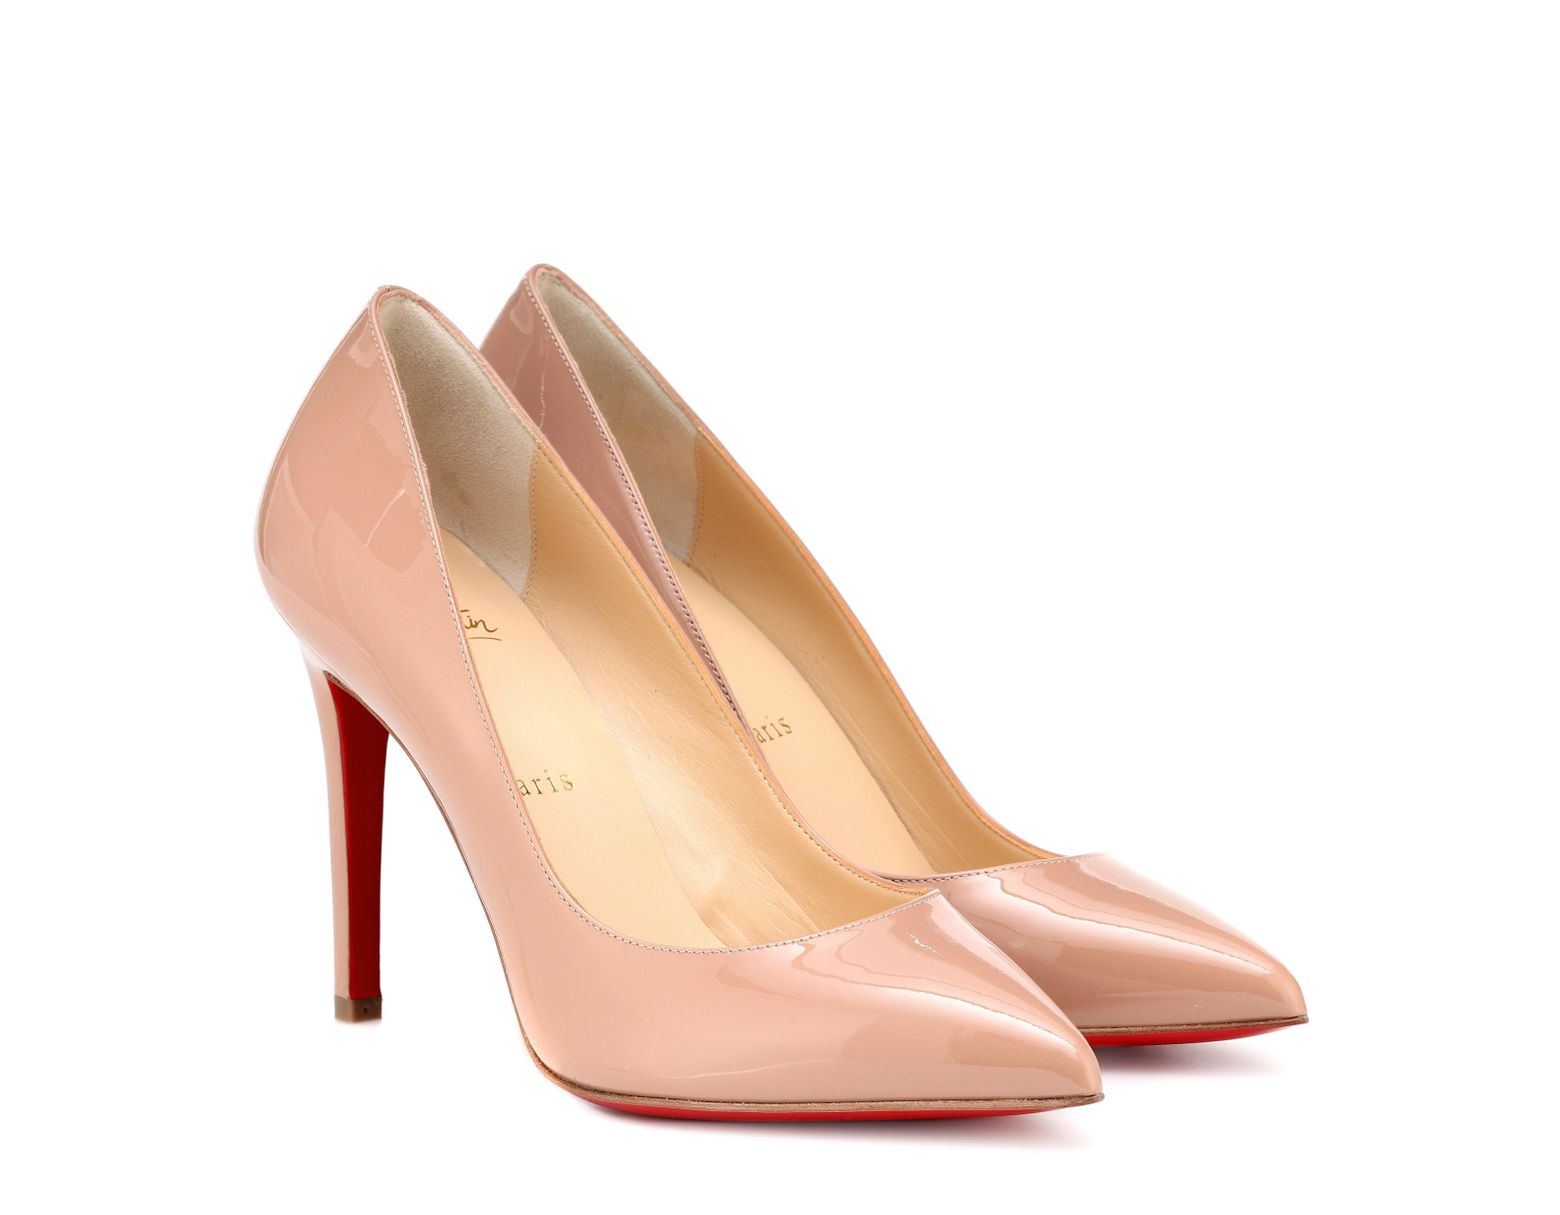 a1c287ec81b Christian Louboutin Pigalle 100 Patent Leather Pumps in Natural - Lyst